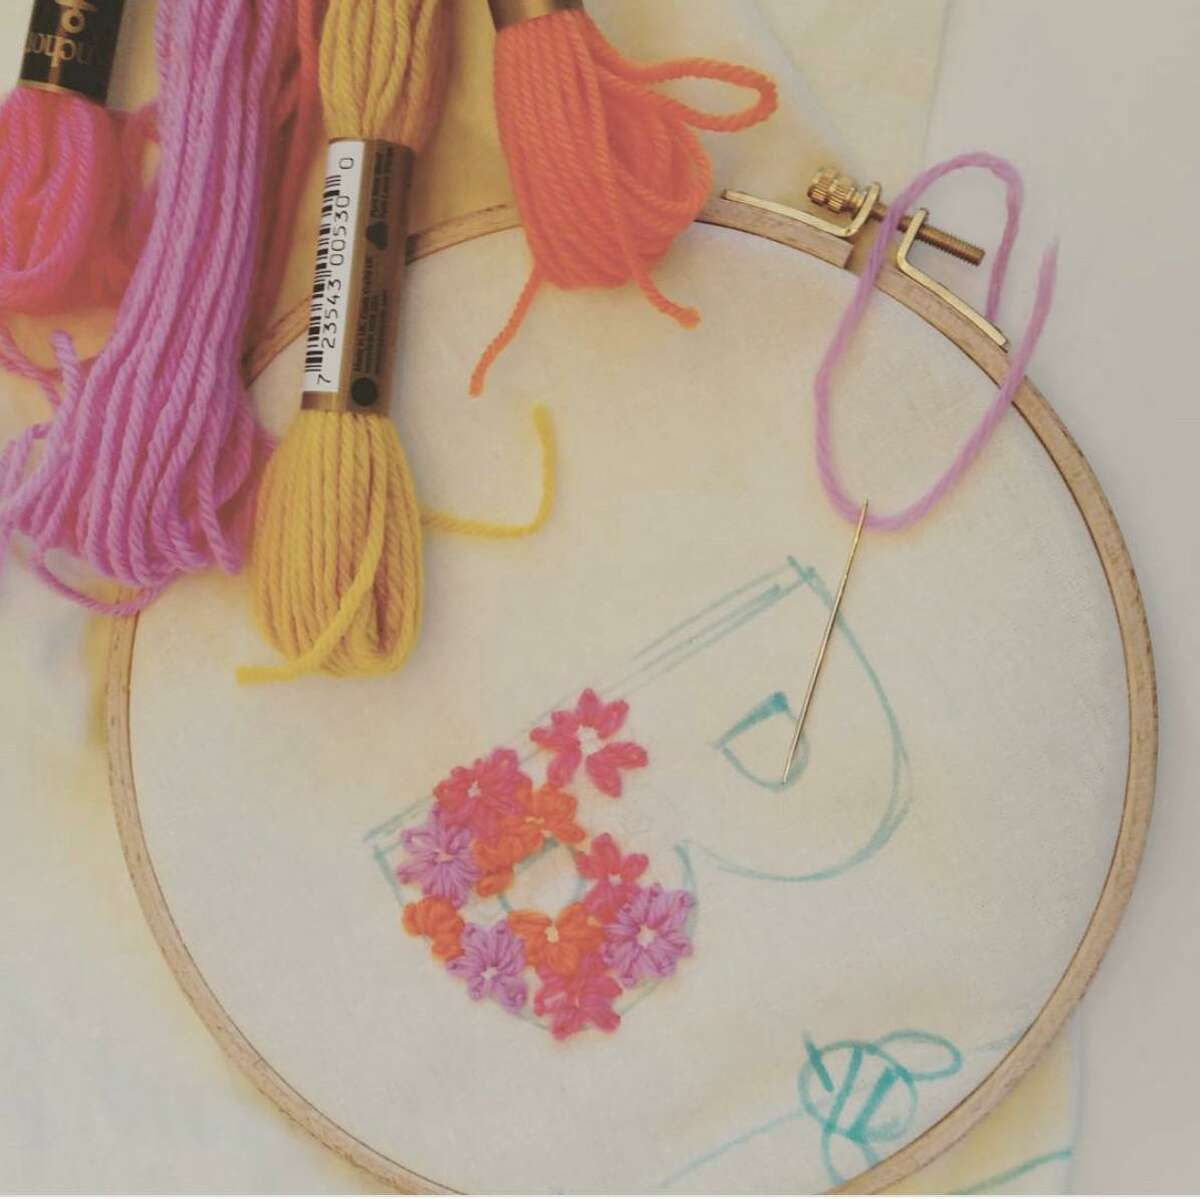 The Mather Homestead in Darien is welcoming New York Illustrator, Textile Designer, and Author Heather Ross for an embroidery workshop on Wednesday, July 28, at 4 p.m.